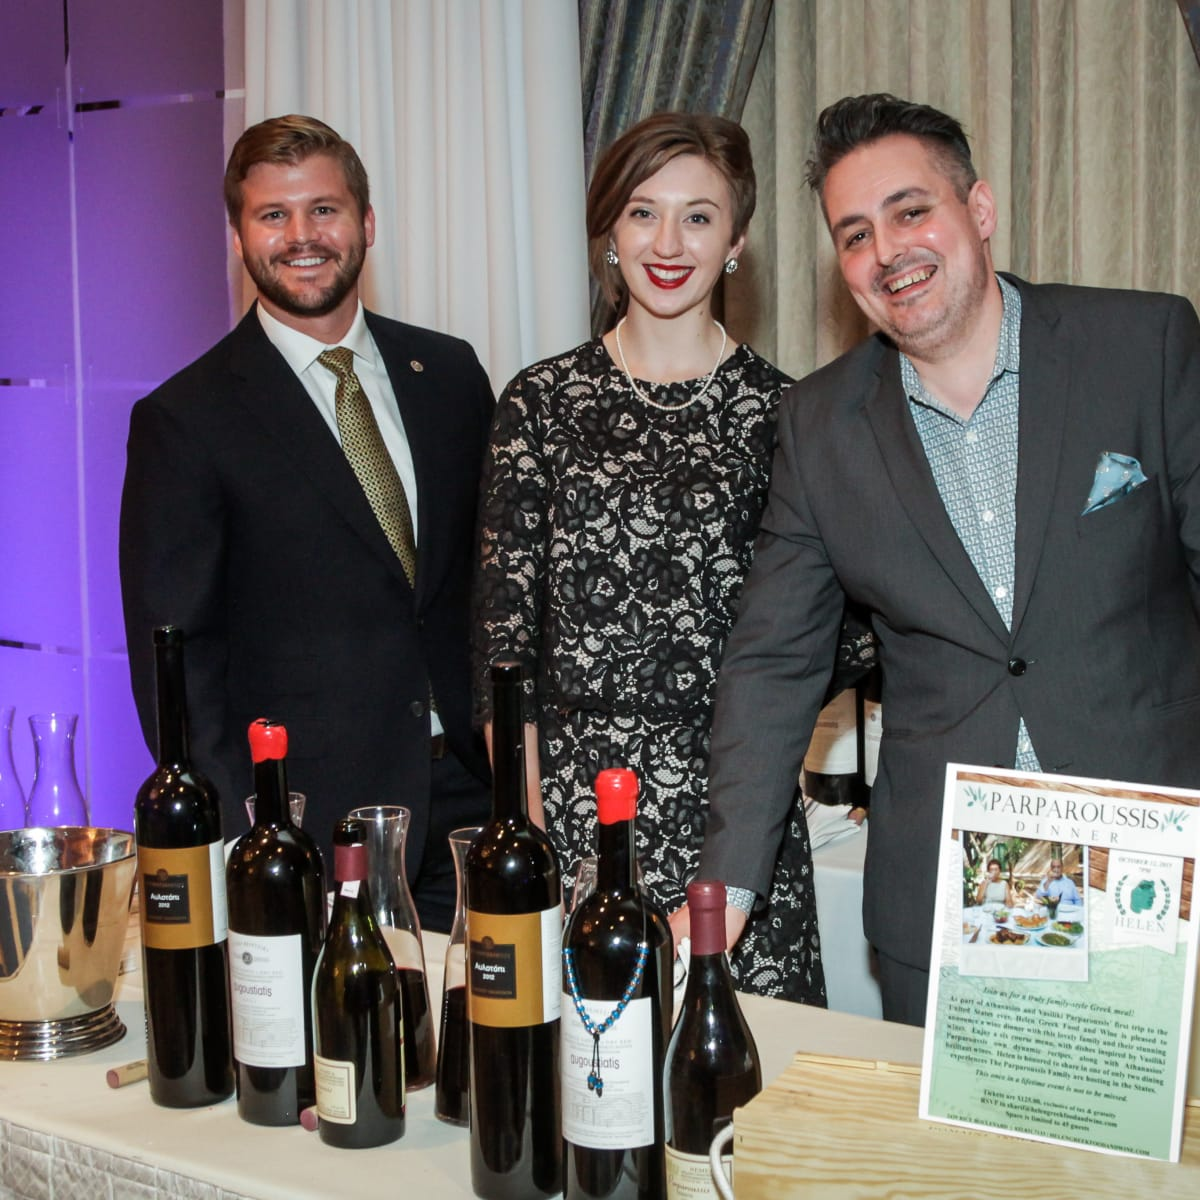 Houston, Periwinkle Foundation Sommelier Competition, September 2015, Matt Crawford; Kate Rash; Evan Turner